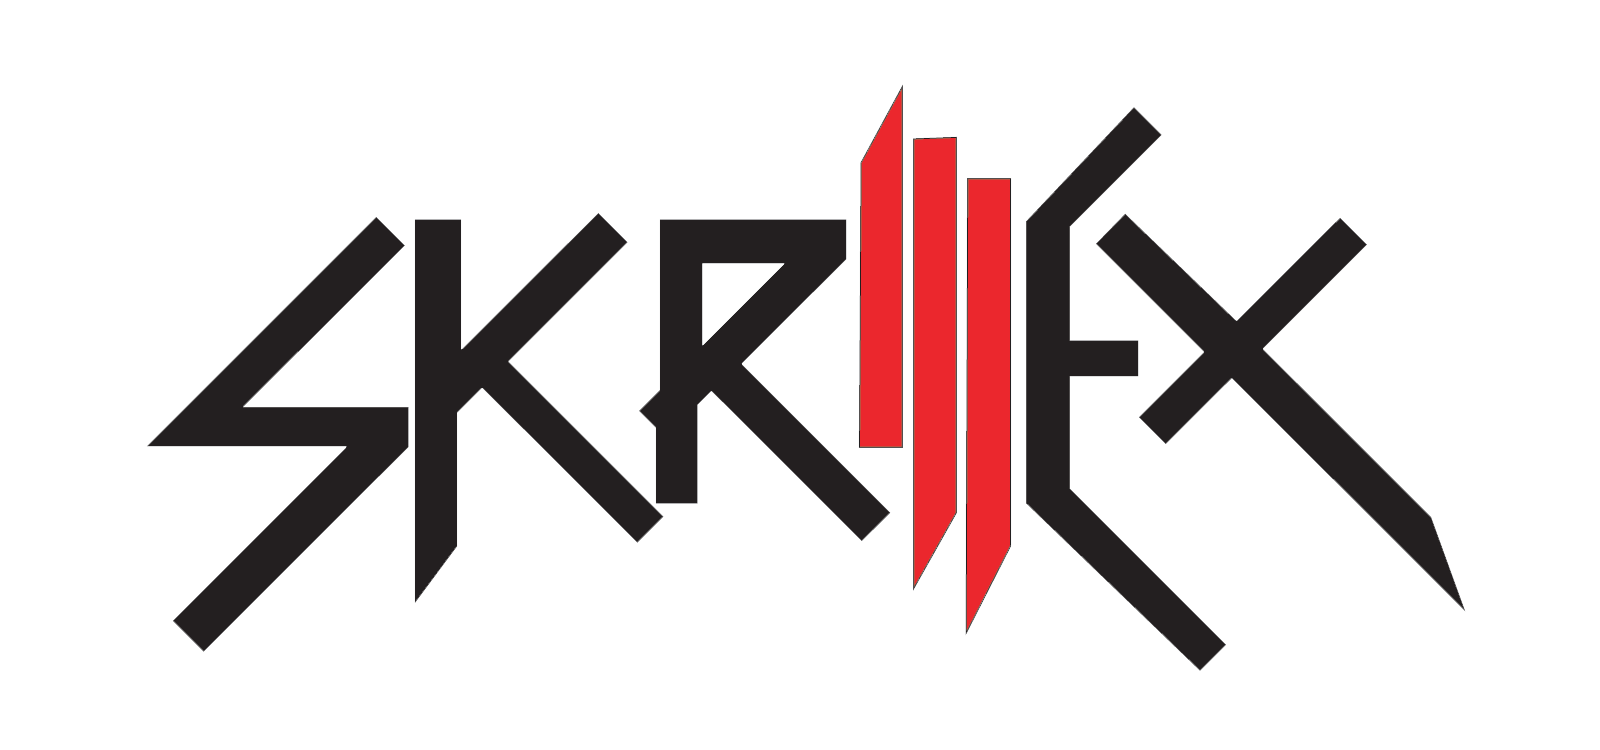 Skrillex logo skrillex symbol meaning history and evolution the real name of the us based electronic dance music producer dj and author of songs skrillex is sonny john moore he started his solo career at the end buycottarizona